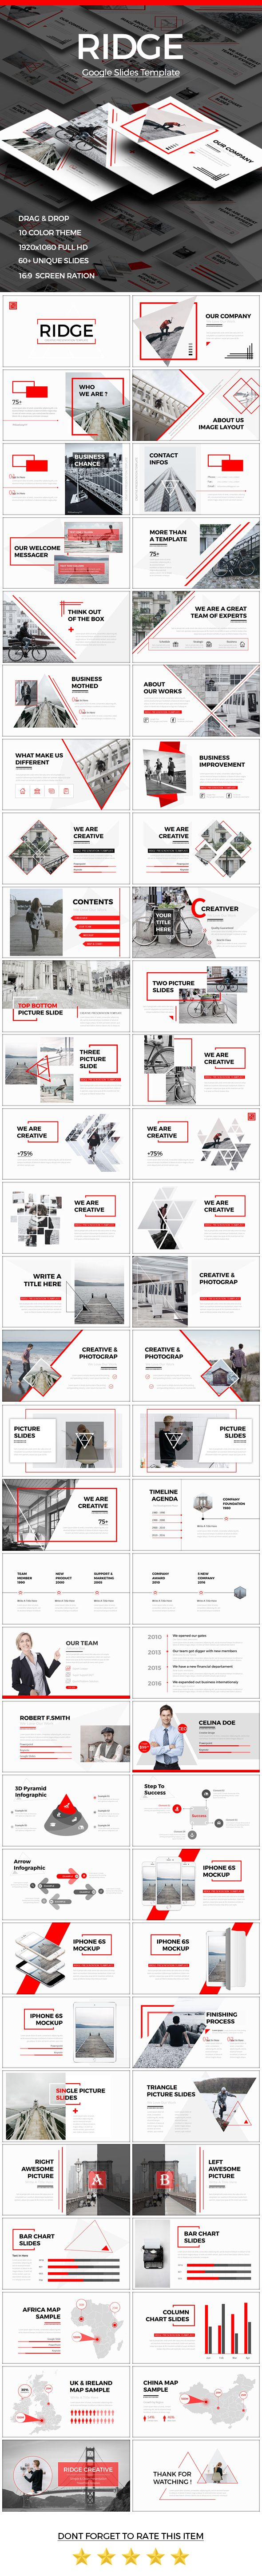 RIDGE - CREATIVE Google Slide Template - Google Slides Presentation Templates